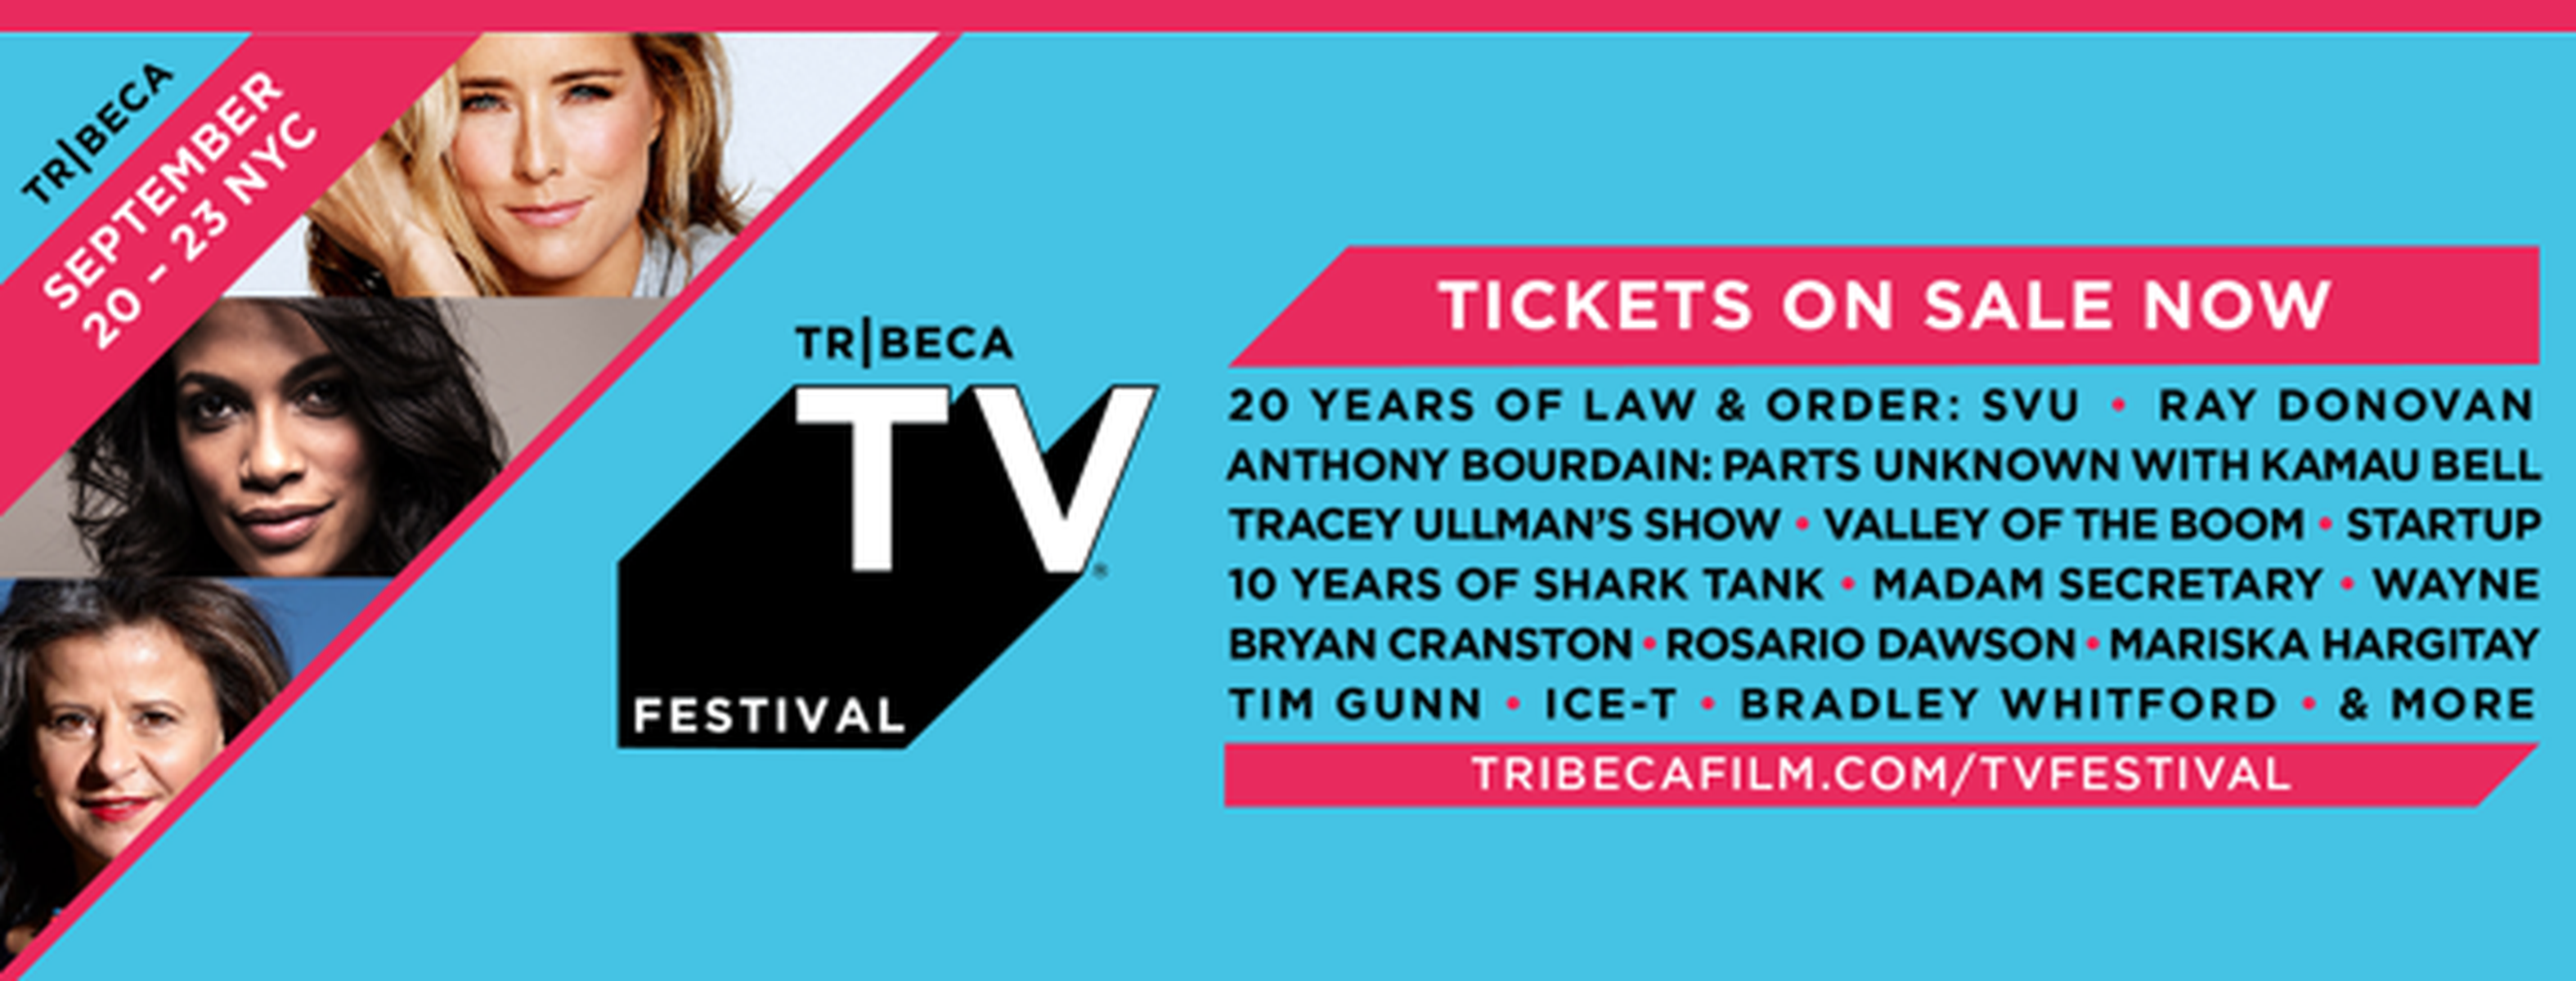 Want to Win Free Tickets to Tribeca TV Festival? Here's How